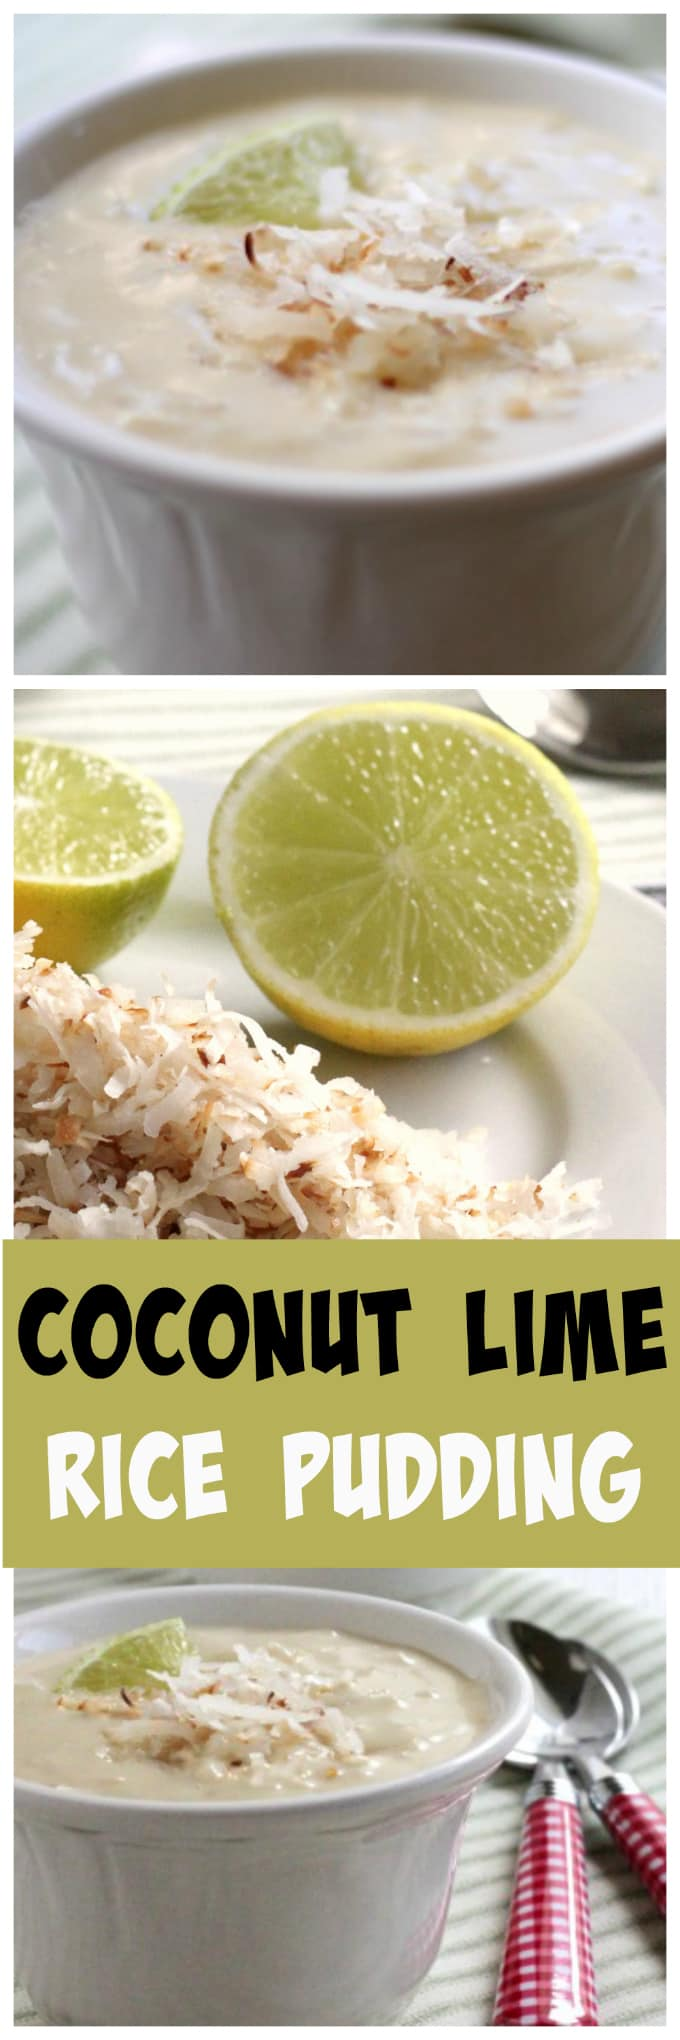 coconut lime rice pudding @createdbydiane